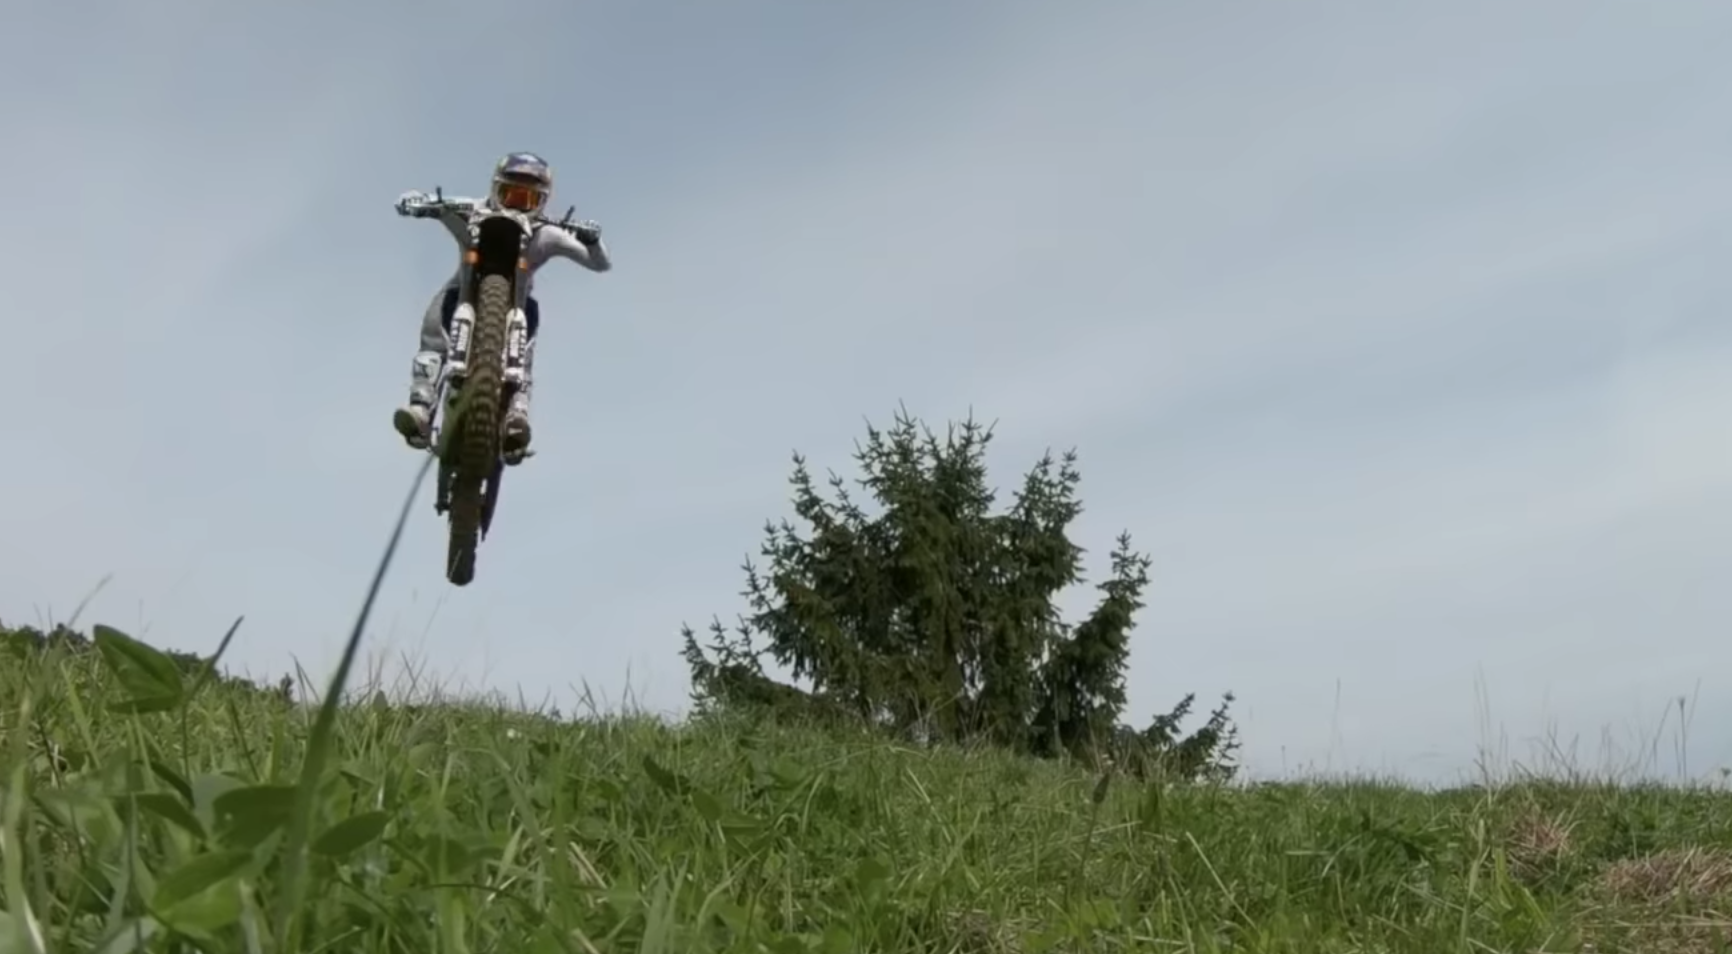 ¿Motocross freestyle con motos eléctricas? El impactante video de Red Bull